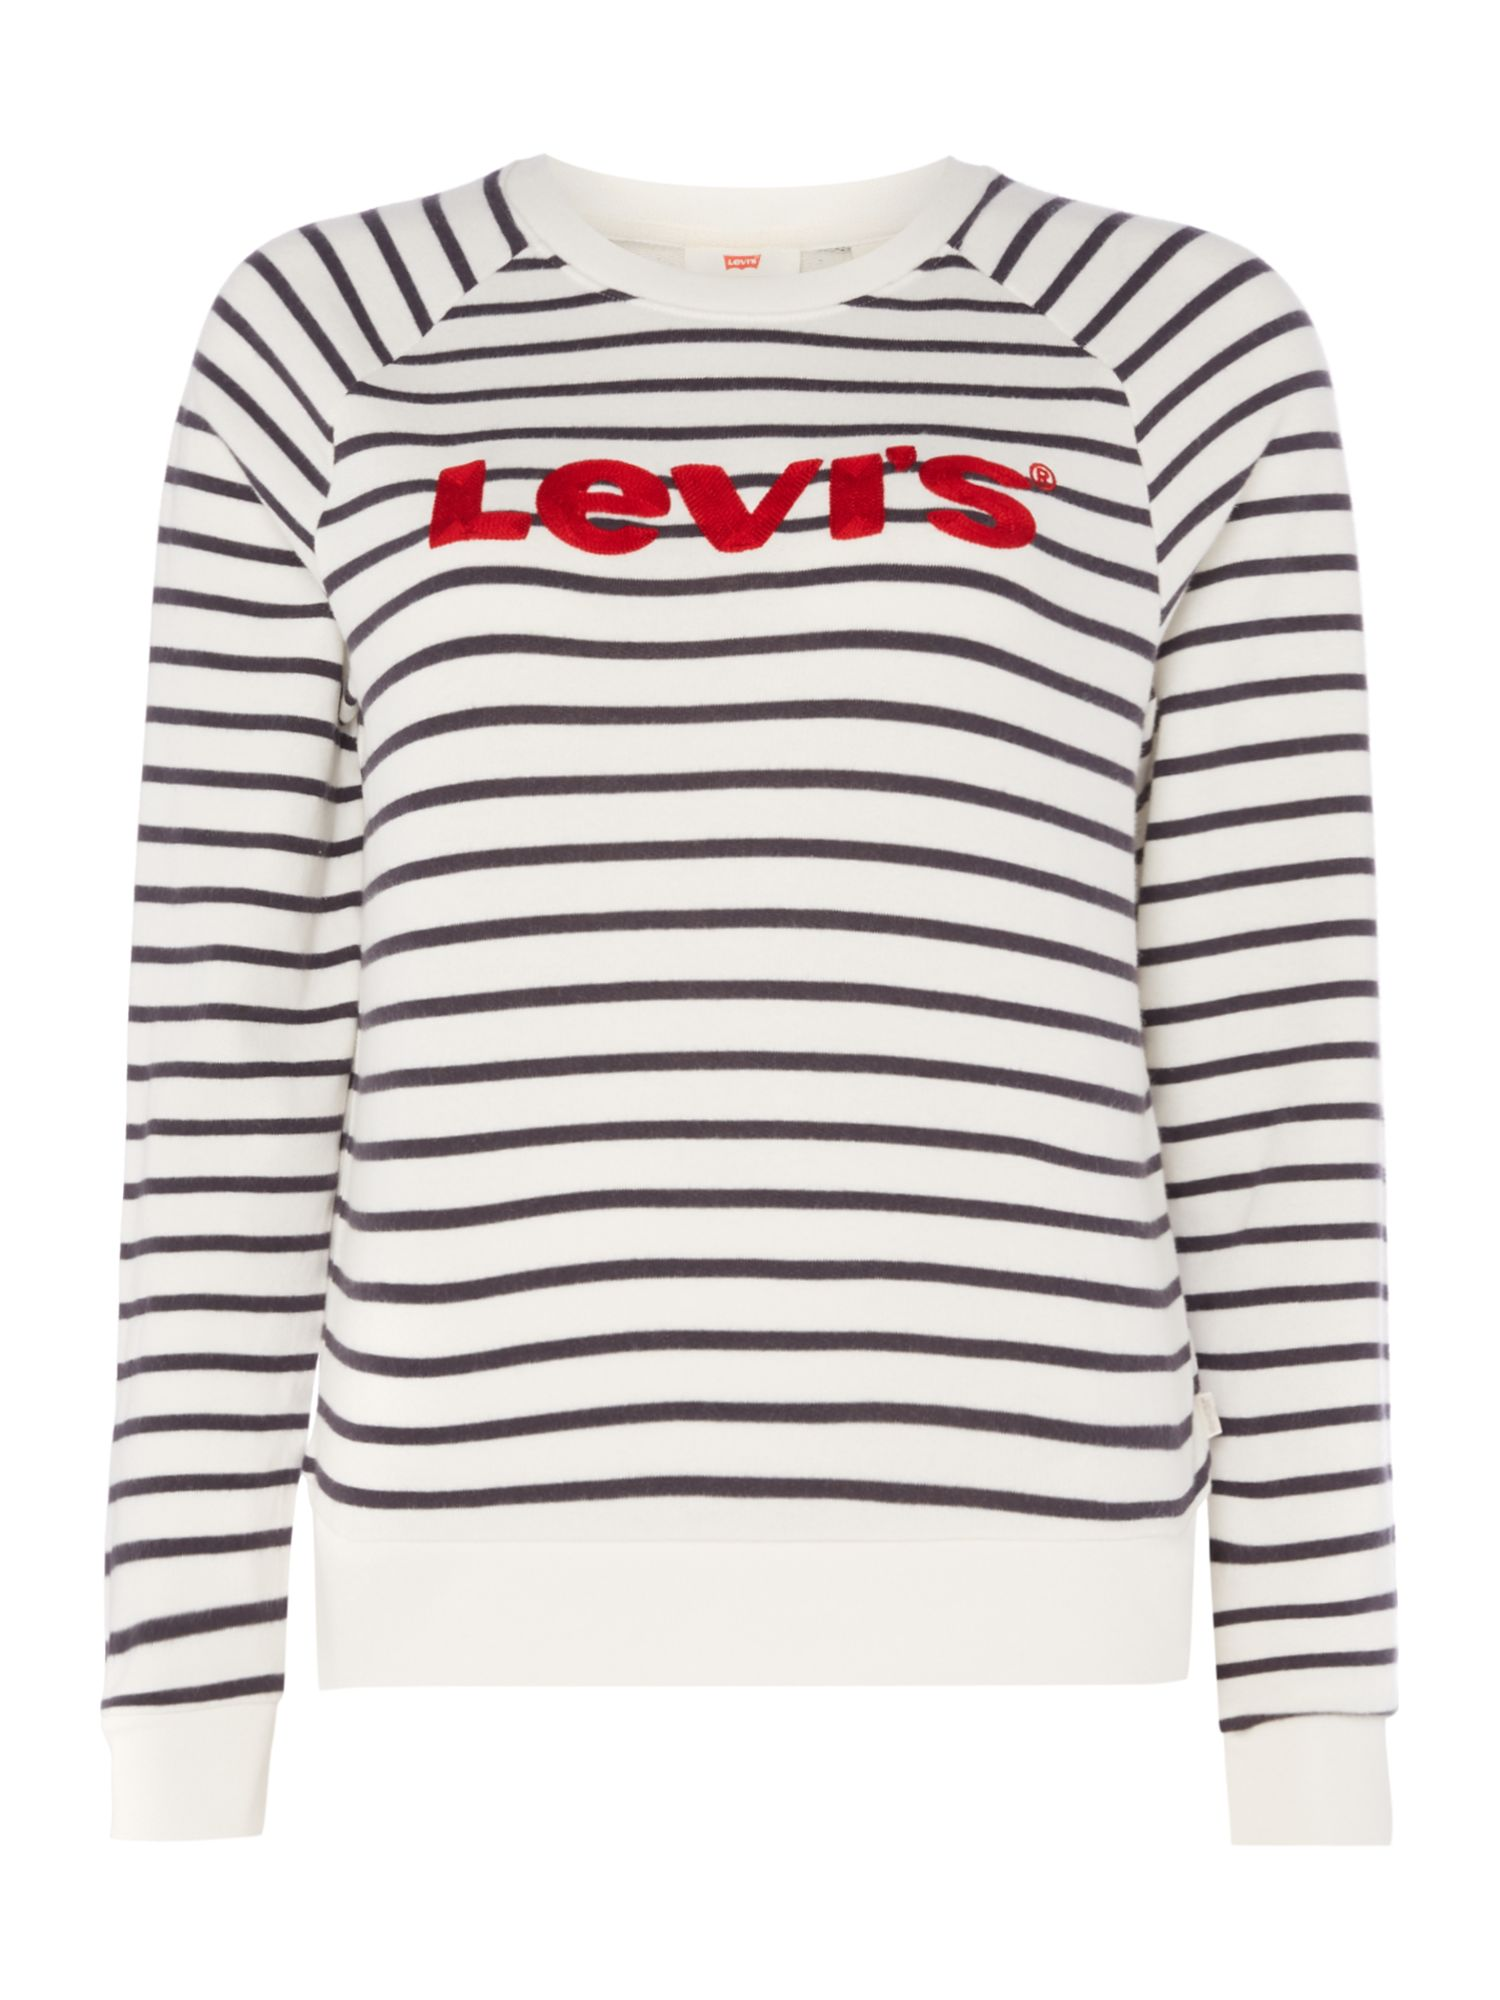 Relaxed Fit Crew Neck Sweatshirt by Levi's